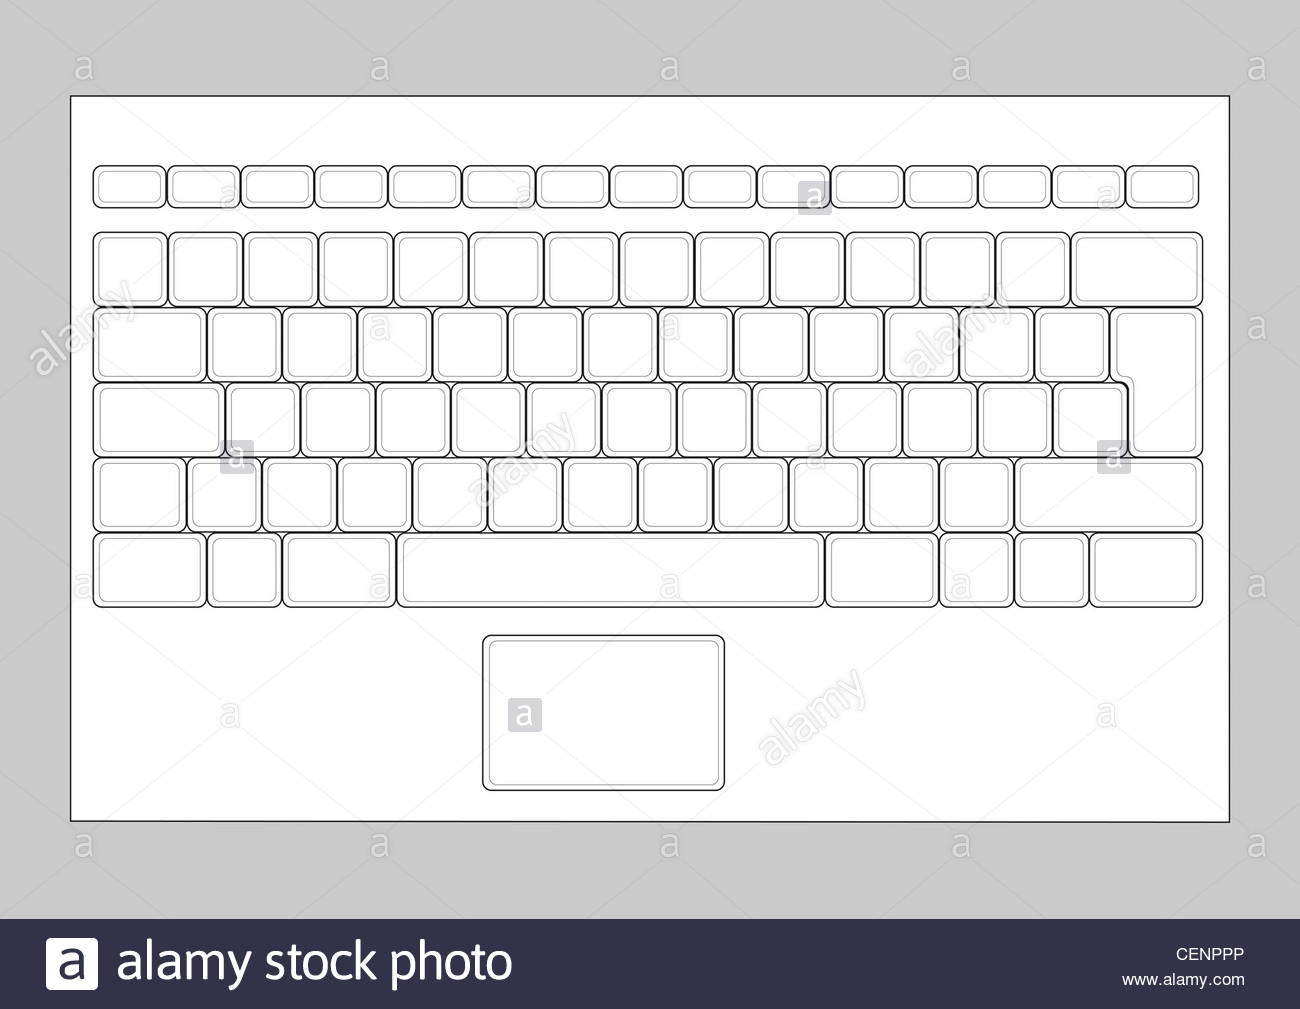 Blank lenovo computer keyboard clipart clip art freeuse Blank Keyboard Layout | April Calendar | April Calendar clip art freeuse